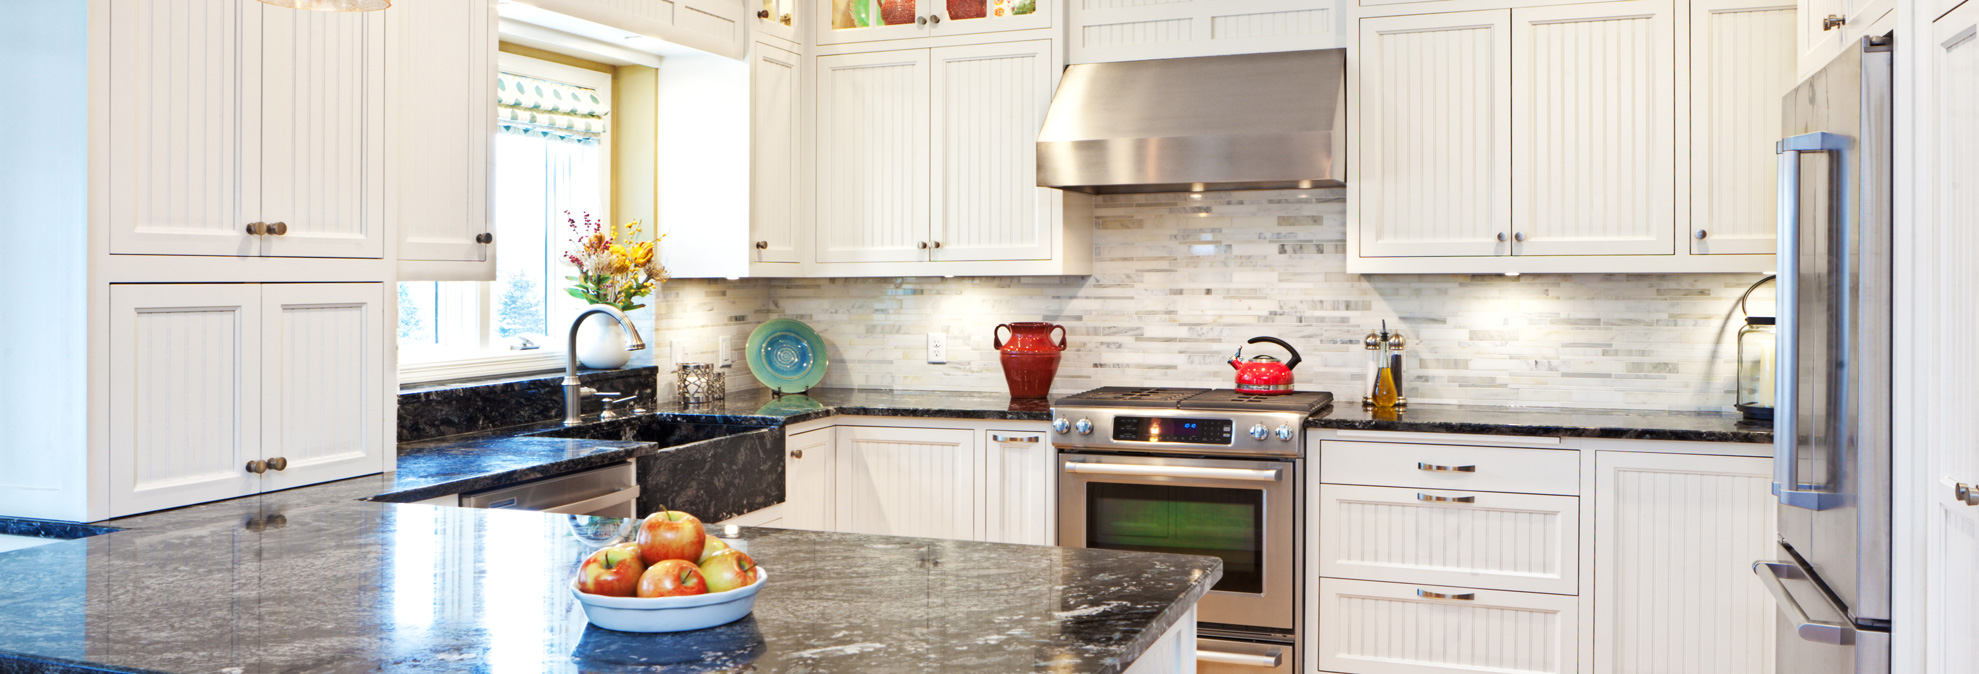 mixing and matching high end kitchen appliances can be a winning recipe kitchen & bath remodeling